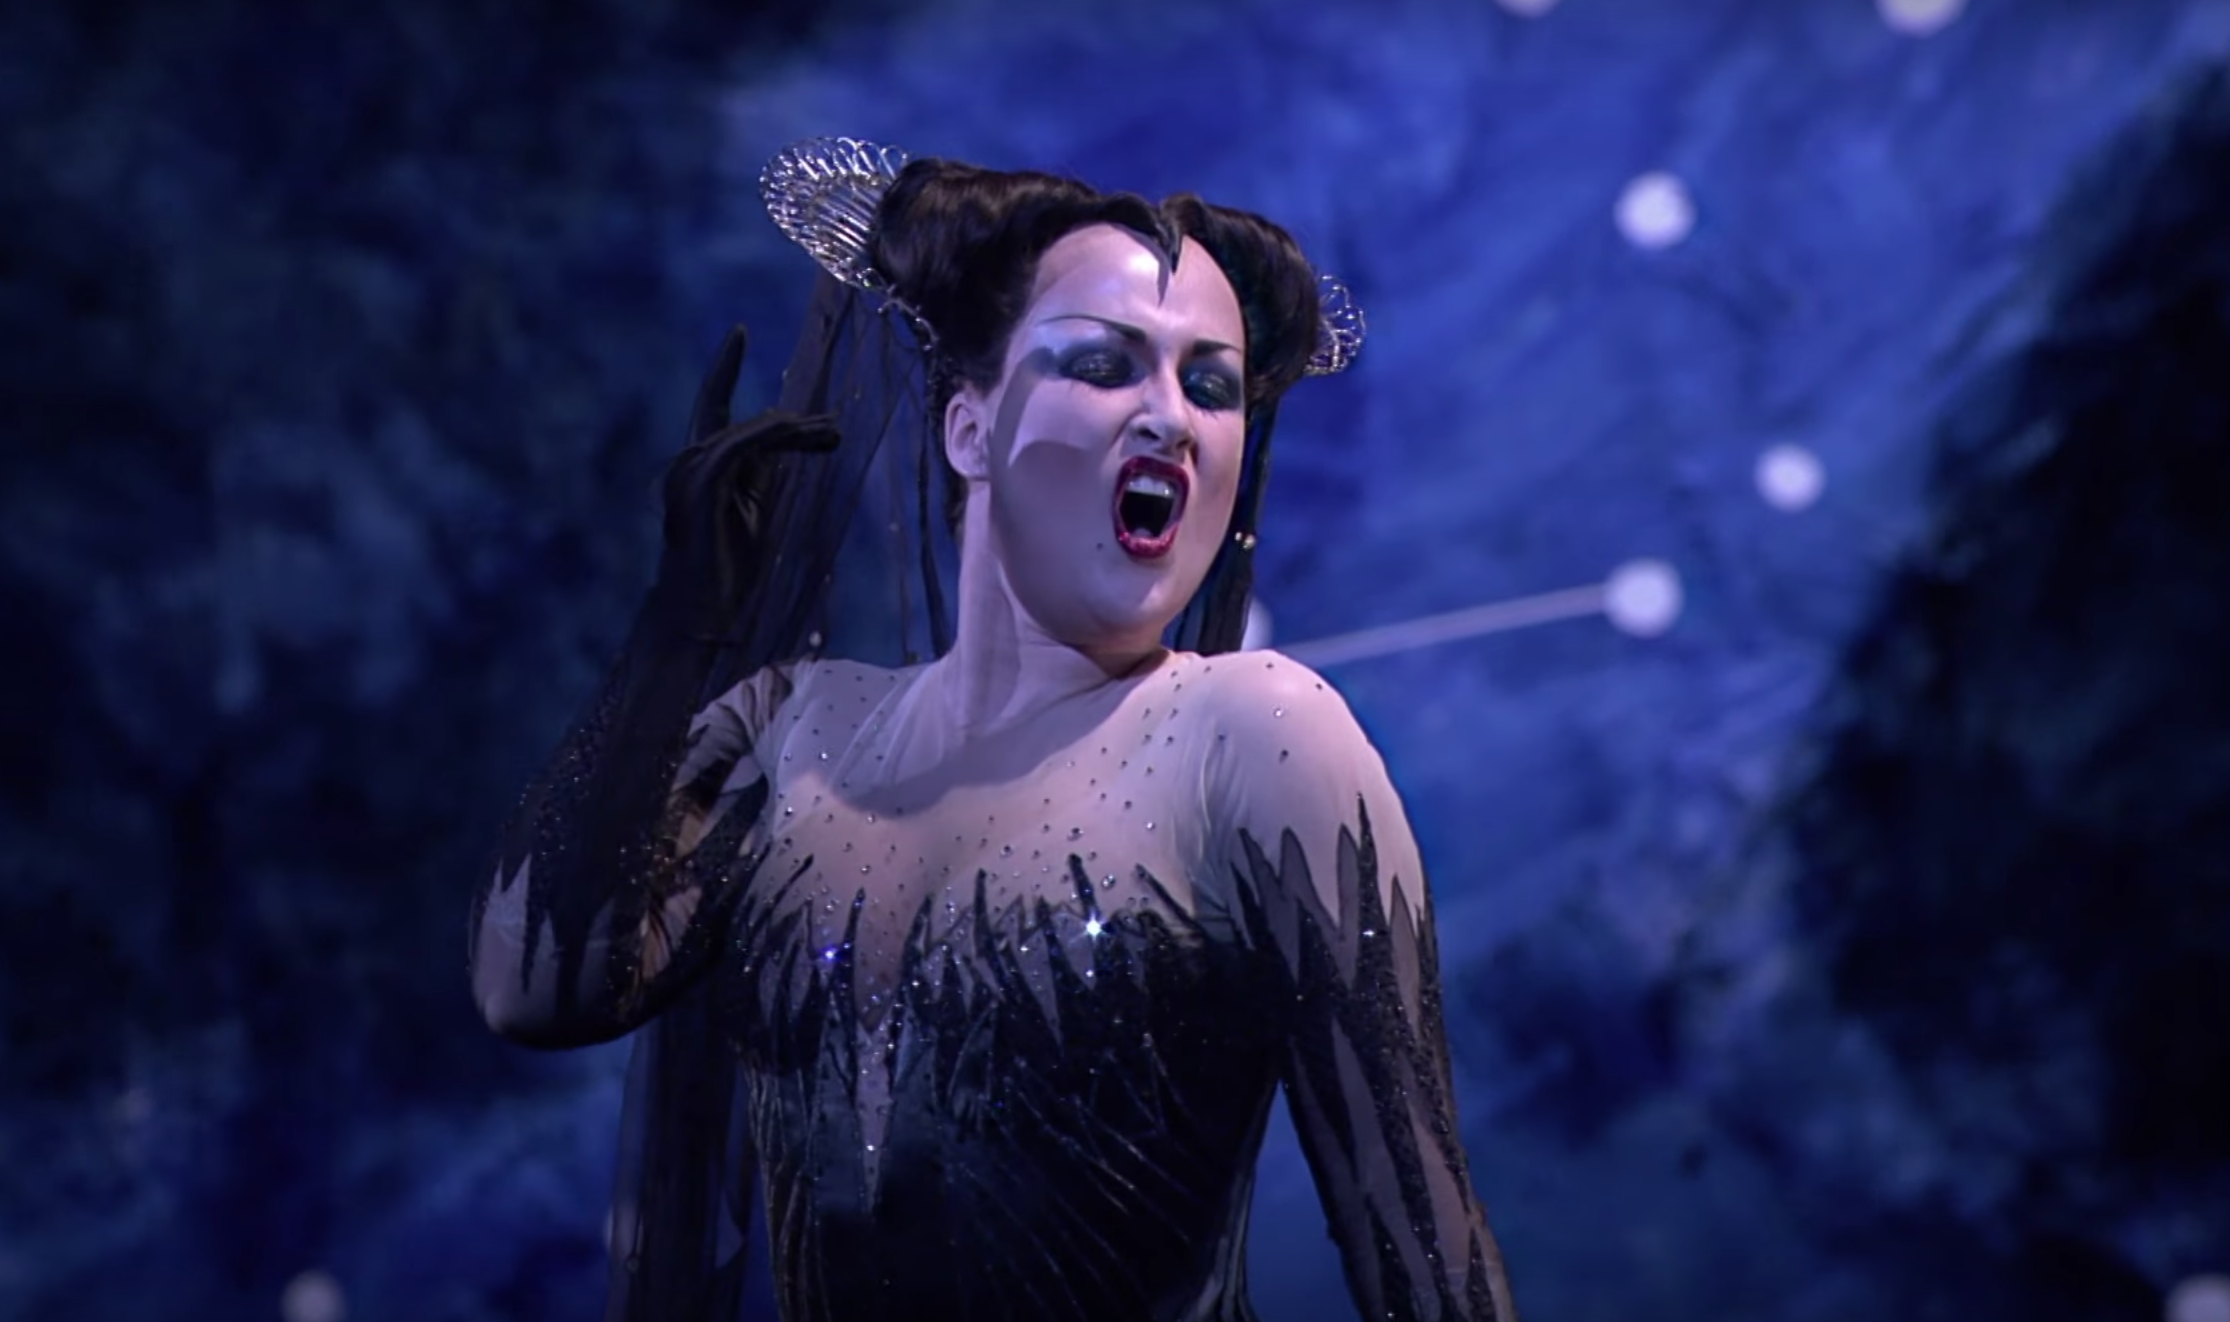 Diana Damrau as Königin der Nacht, Royal Opera House © Diana Damrau